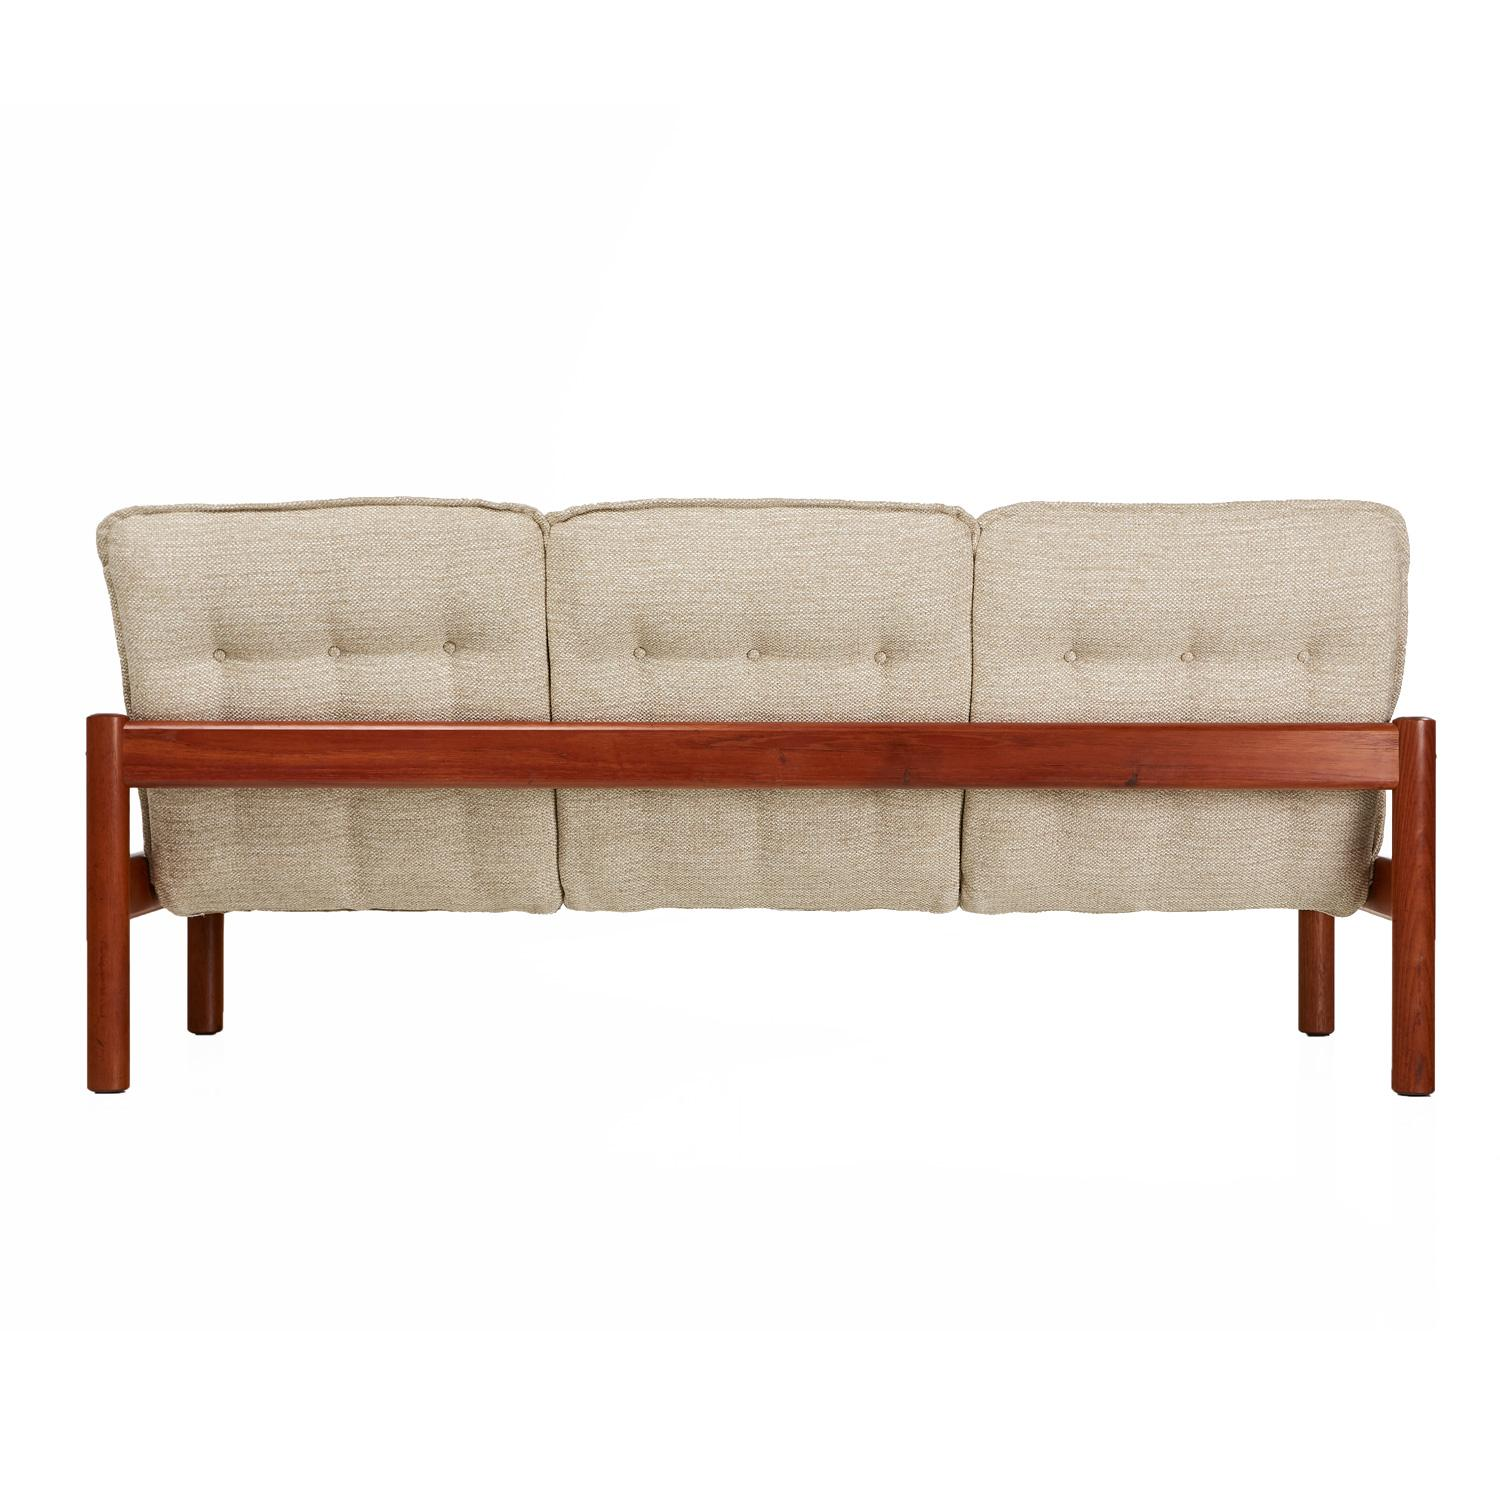 Sofa Modern Domino Mobler Solid Teak Danish Modern Three Seat Sofa Couch New Upholstery